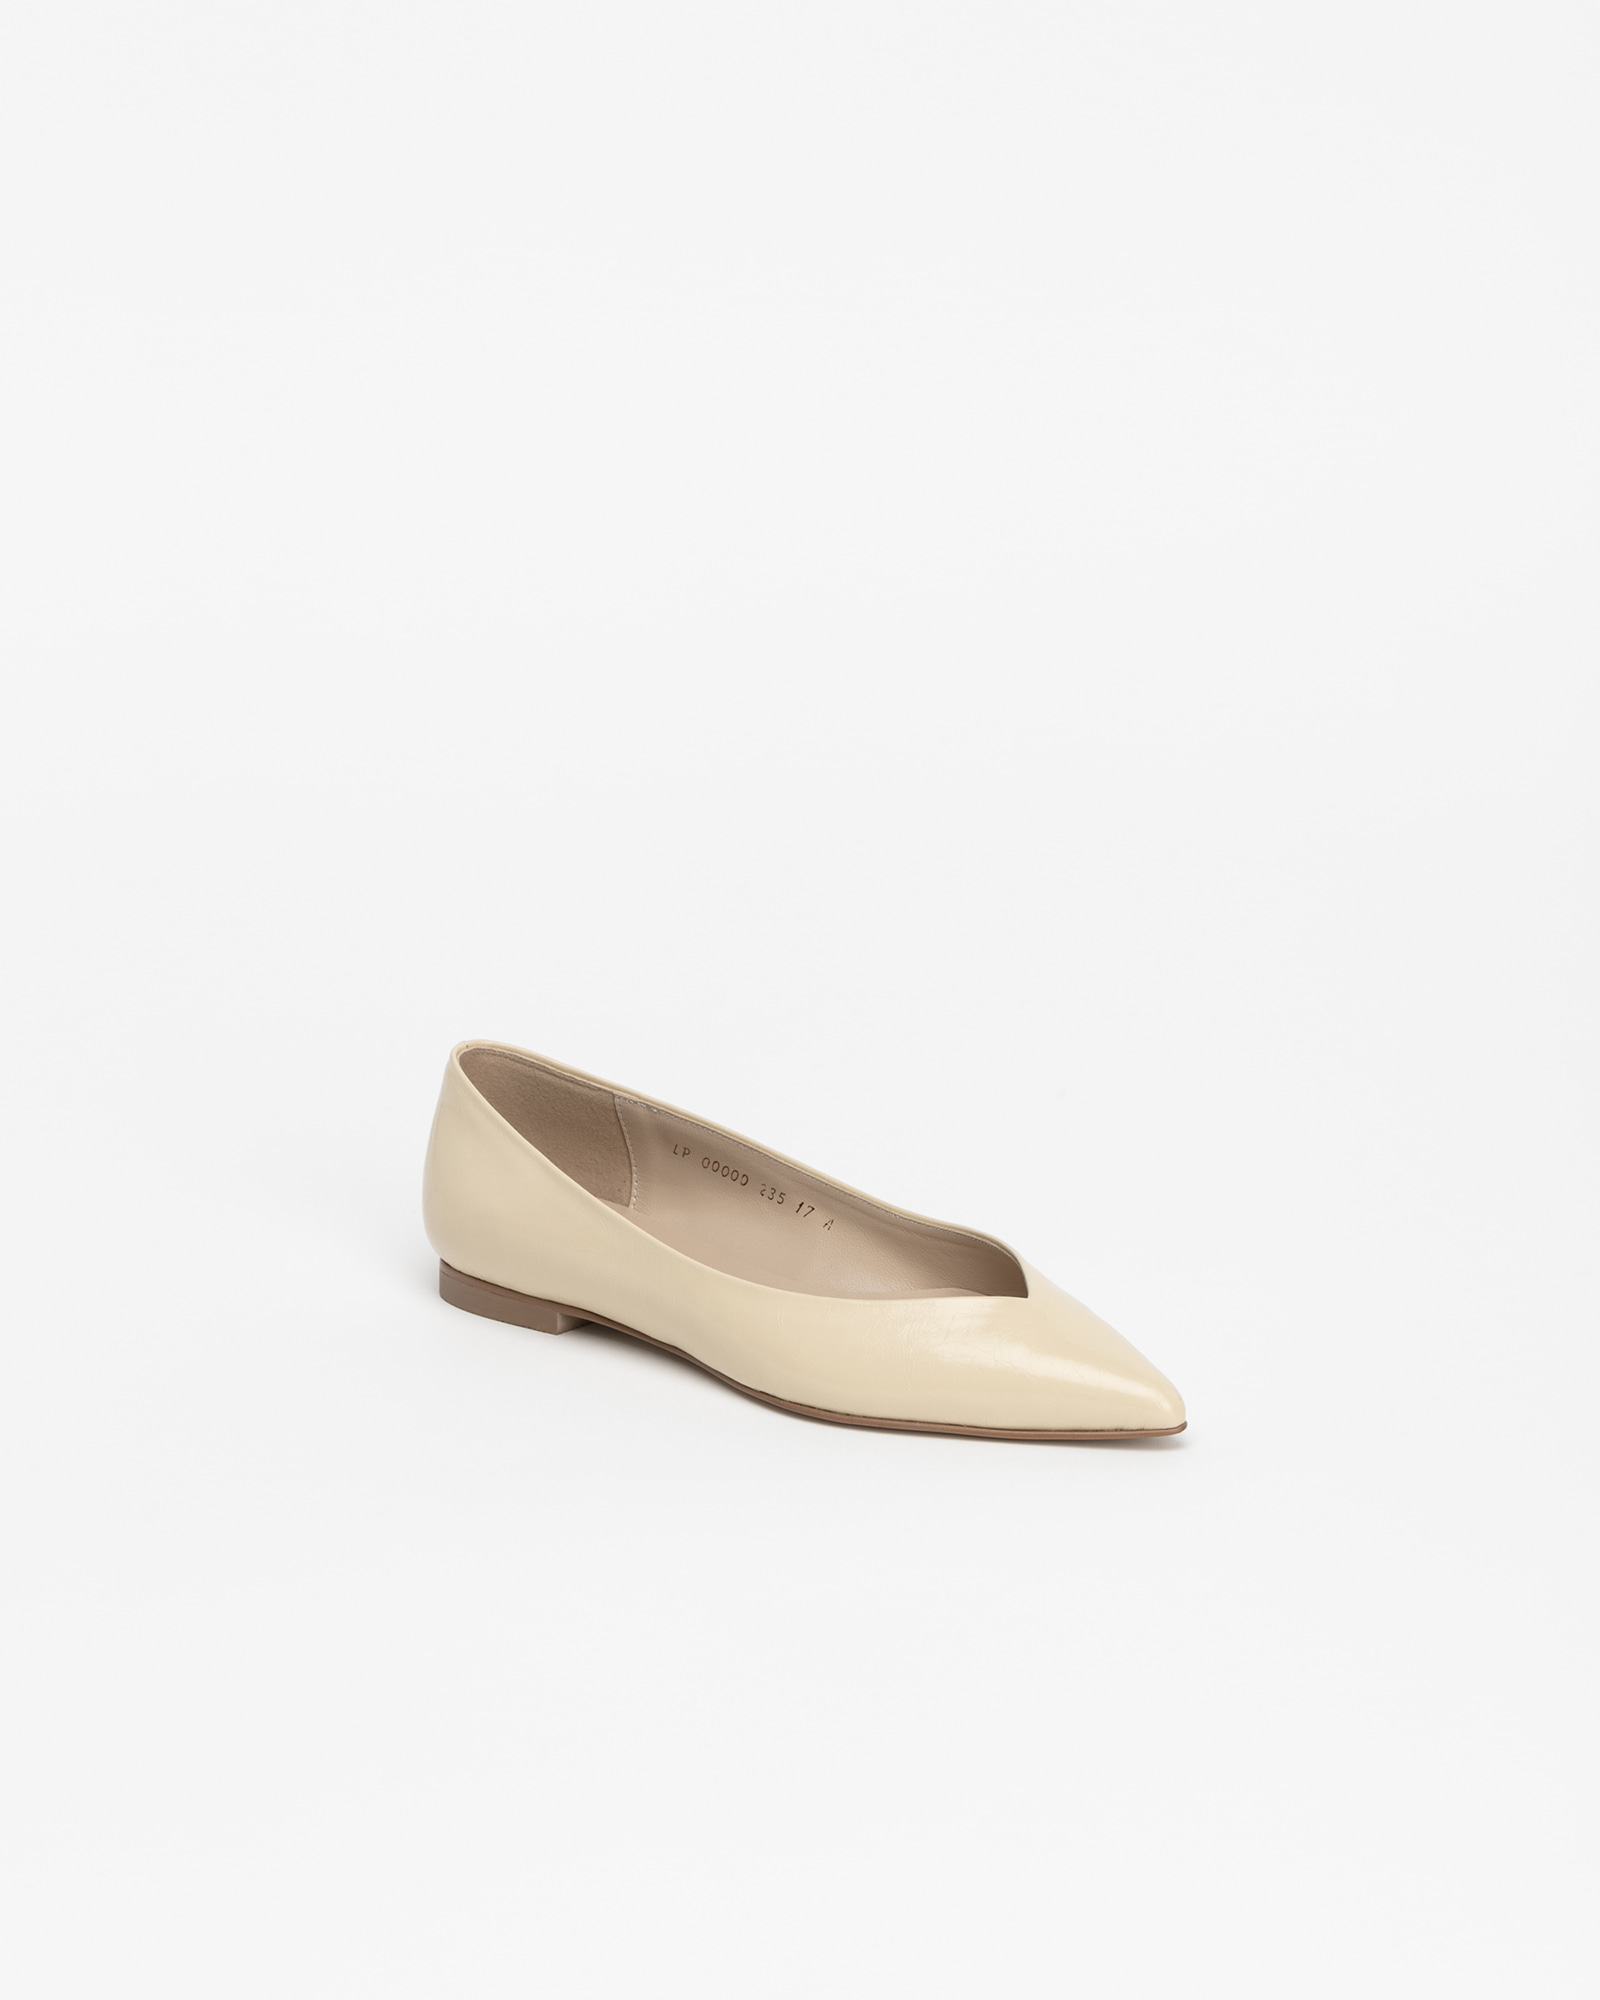 Preta Flat Shoes in Wrinkled Light Yellow